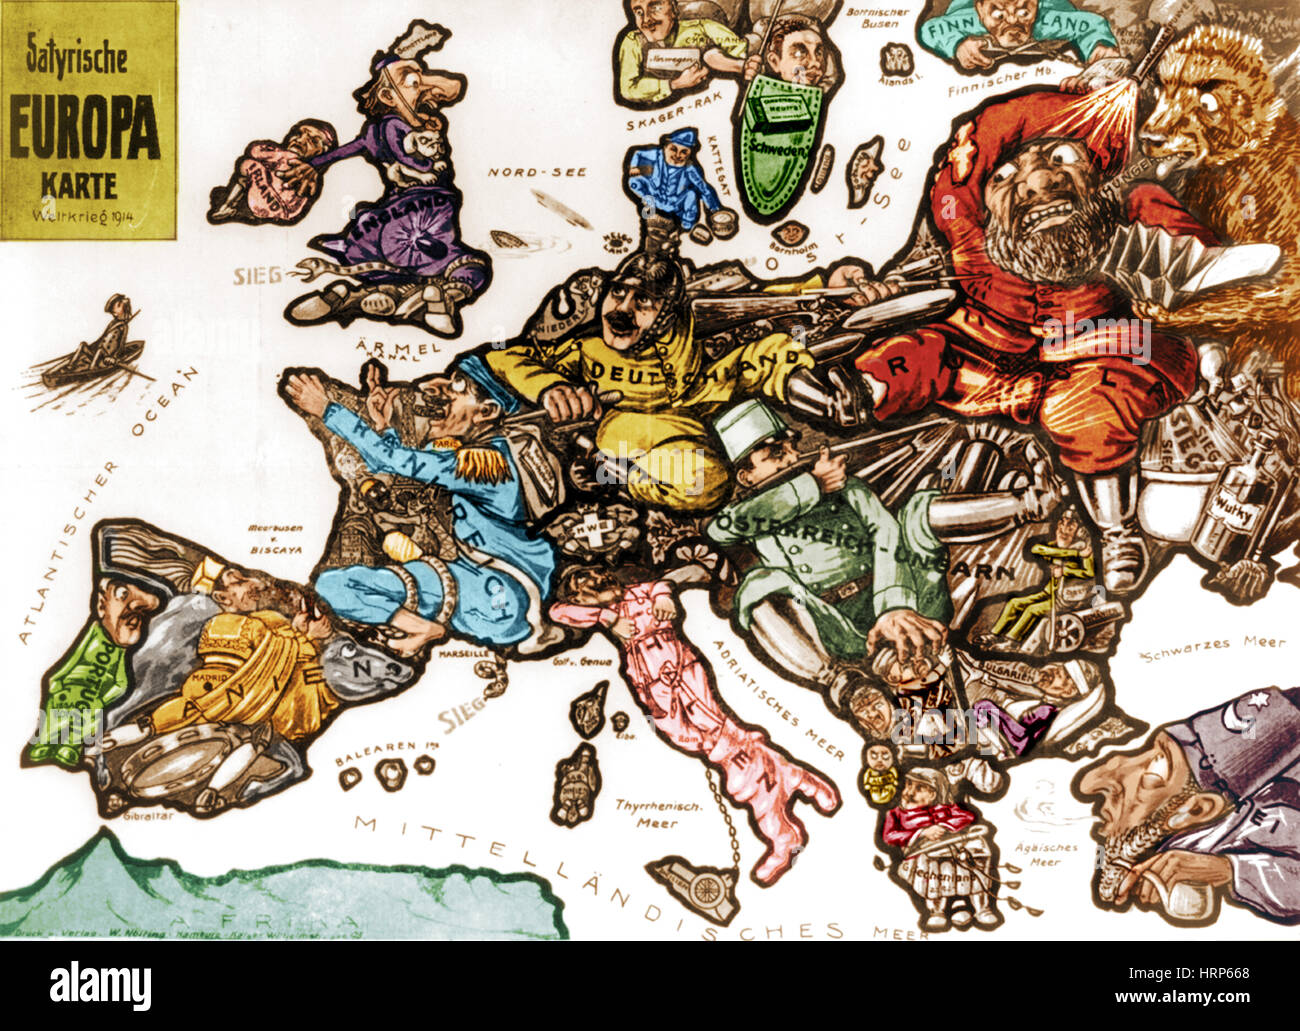 WWI, Satirical War Map of Europe, 1914 Stock Photo: 135097488 - Alamy